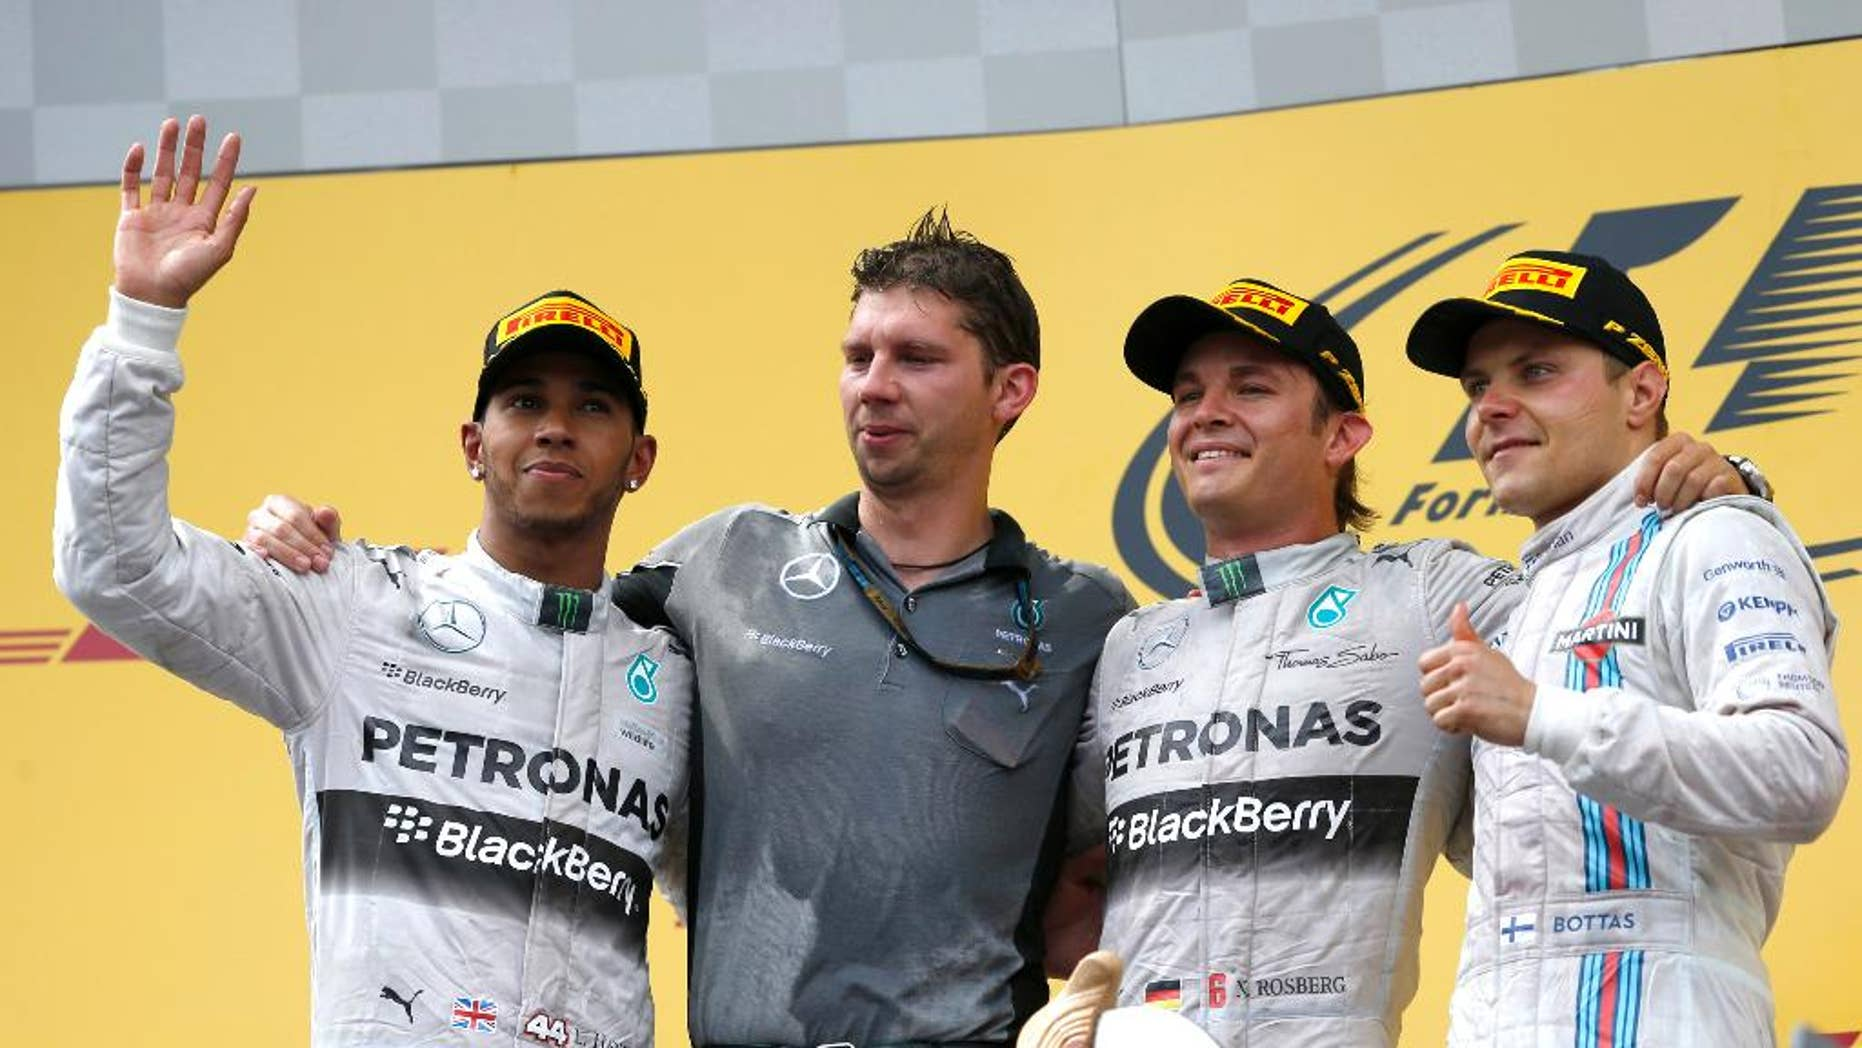 Mercedes driver Nico Rosberg of Germany, second from right, celebrates winning on the podium with team member James Vowles, second from left, second placed Mercedes driver Lewis Hamilton of Britain, left and third placed Williams driver Valtteri Bottas of Finland, after the Austrian Formula One Grand Prix race at the Red Bull Ring in Spielberg, Austria, Sunday, June 22, 2014. (AP Photo/Darko Vojinovic)